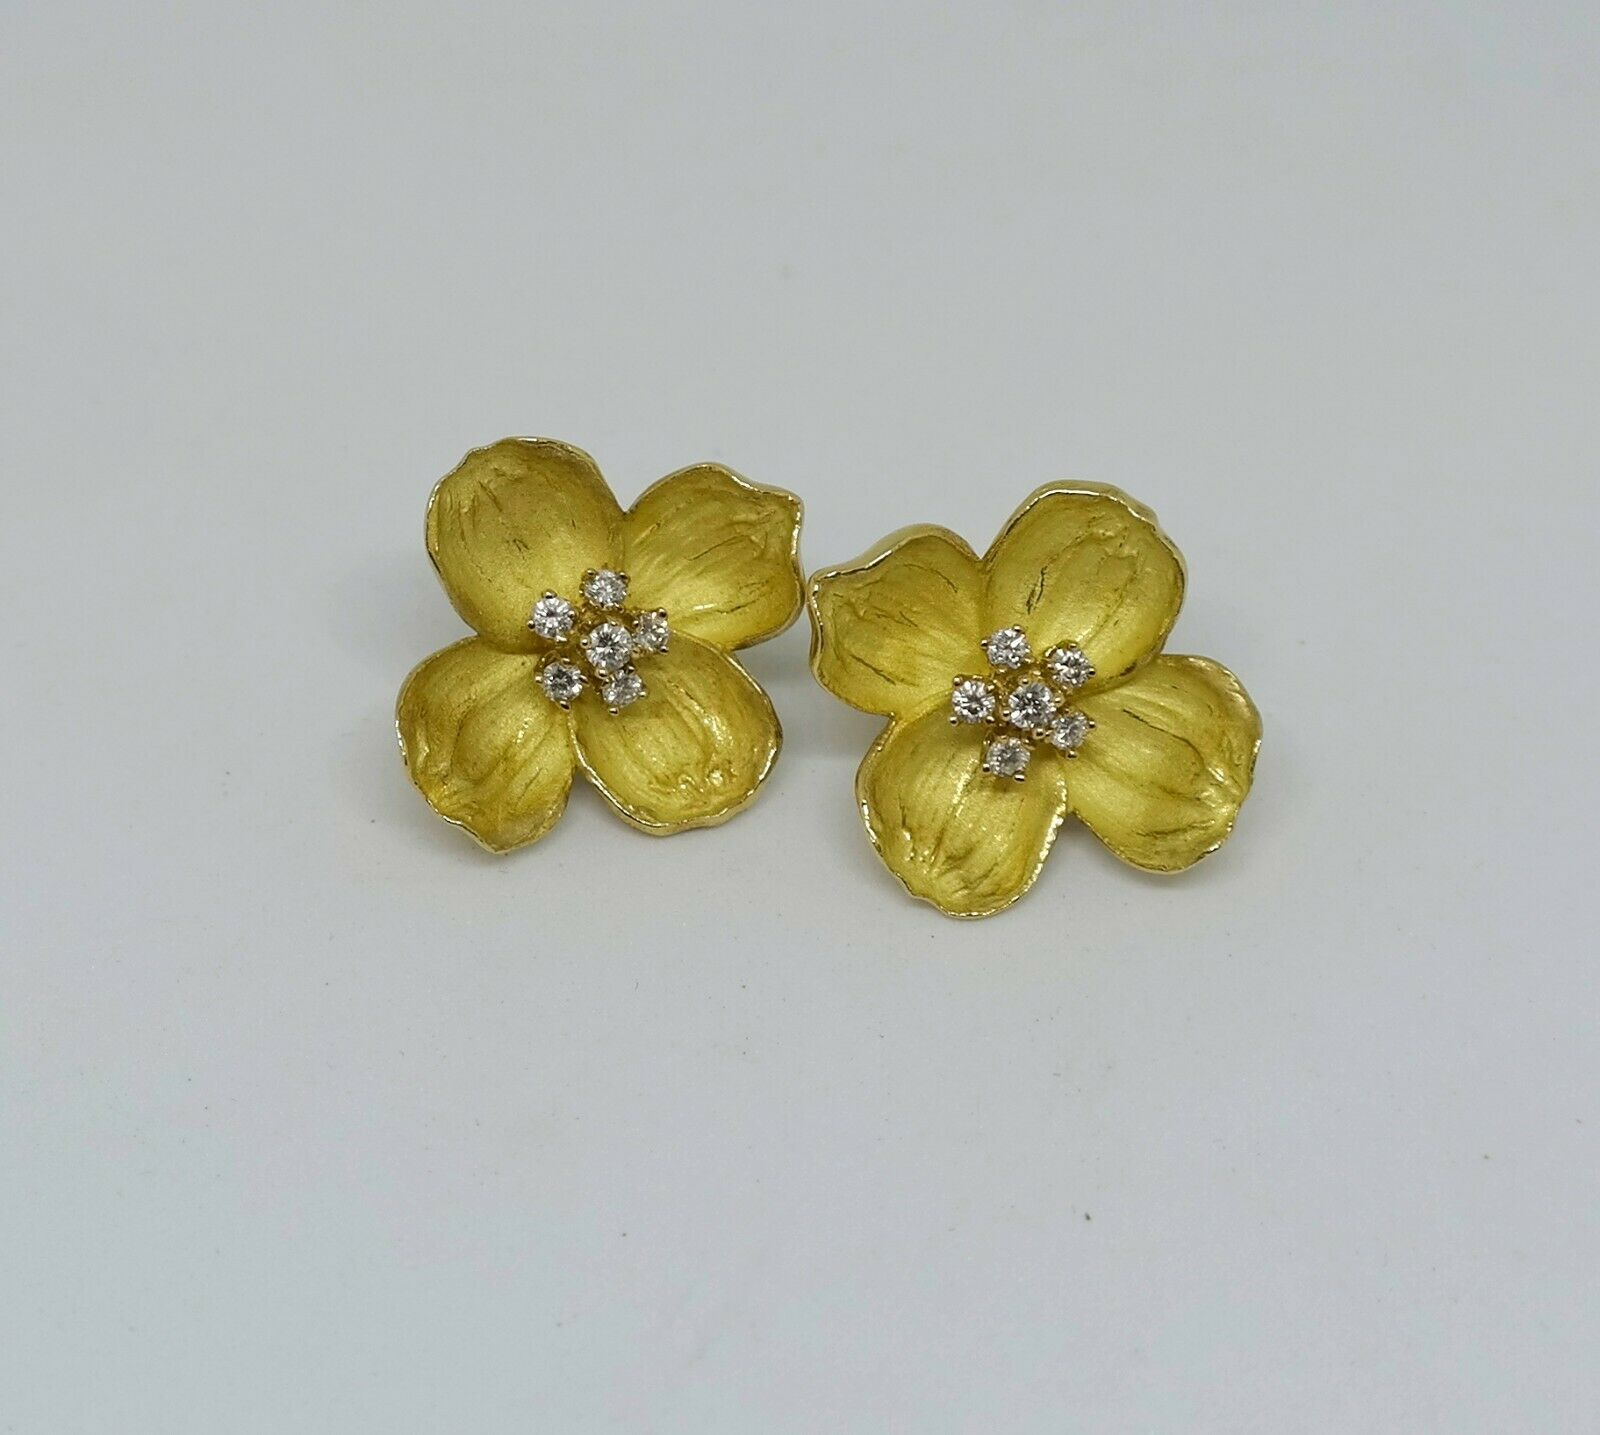 Tiffany & Co. Flower Earrings with Diamonds, 18K Yellow Gold, Clip-On Style